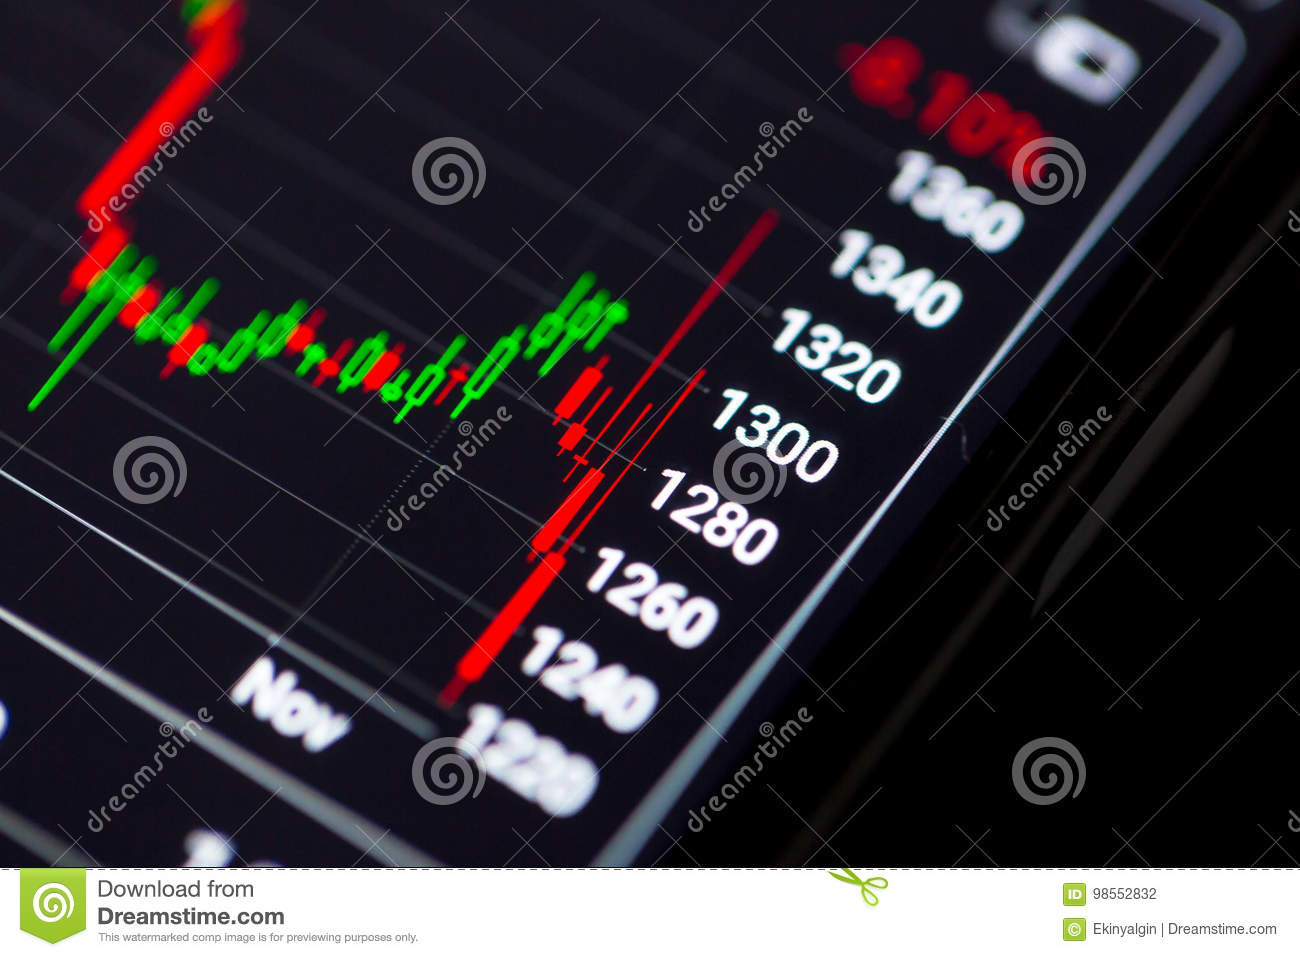 hight resolution of business and trading finance contept stock exchange market chart view on smart phone screen